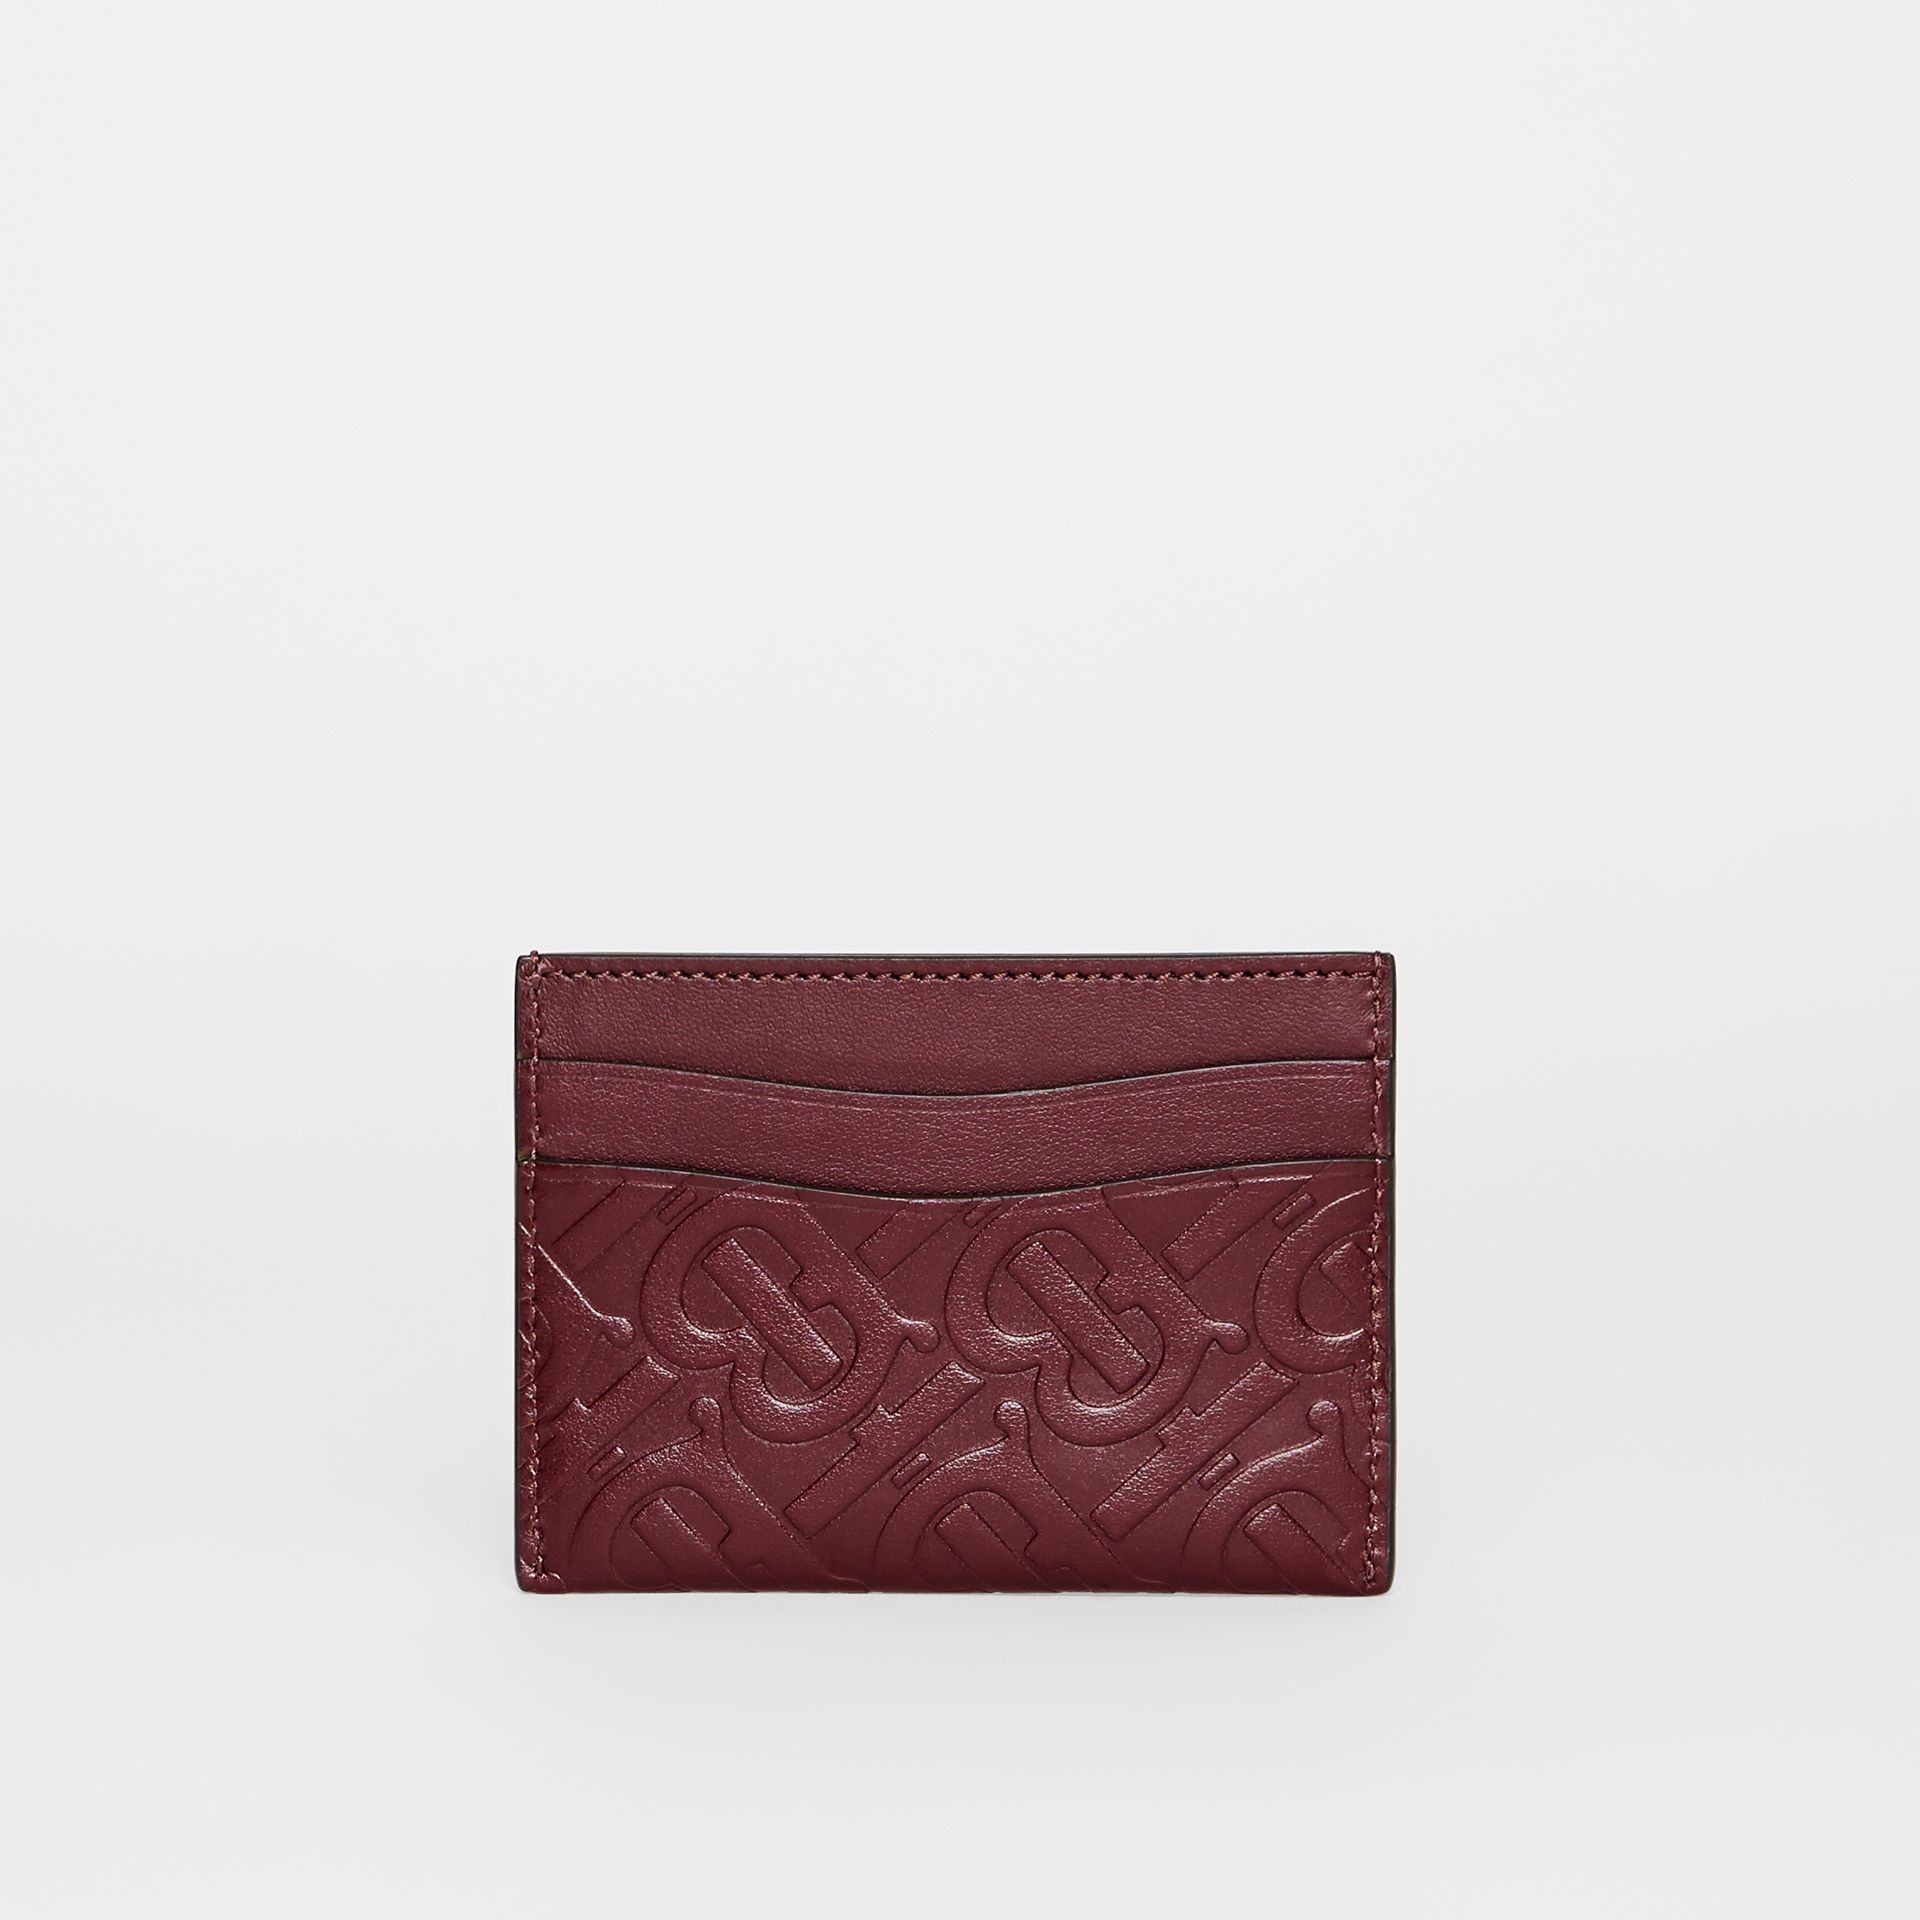 Monogram Leather Card Case in Oxblood - Women | Burberry Australia - gallery image 4